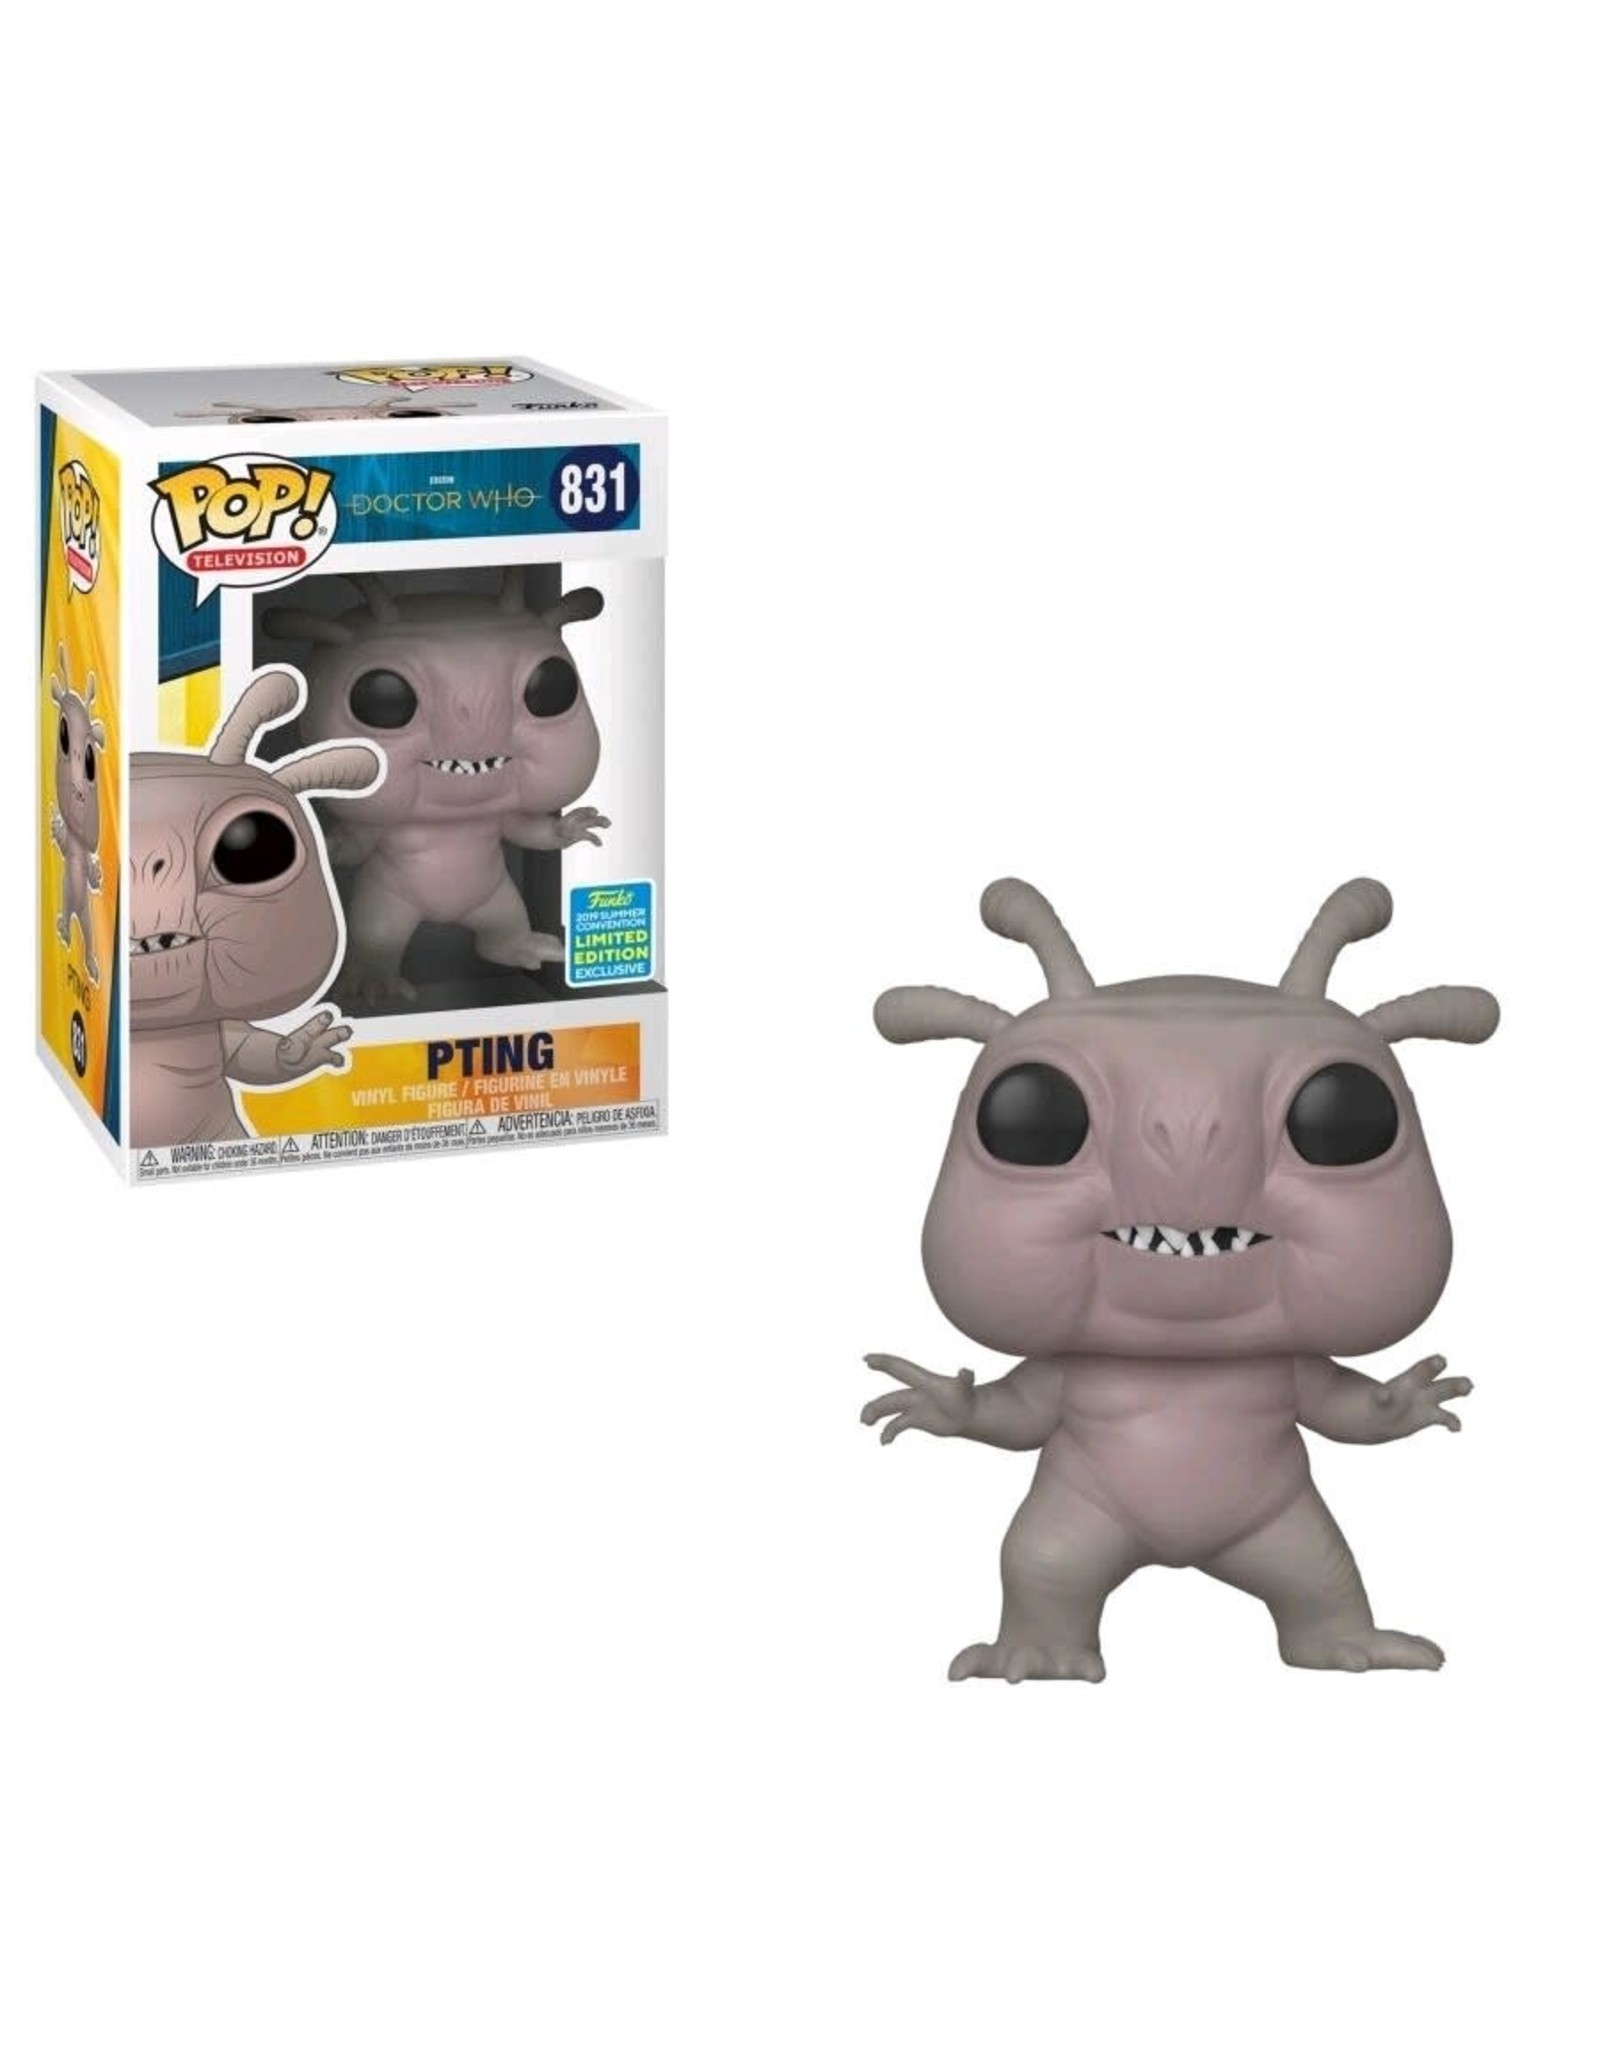 FUNKO DOCTOR WHO PTING POP 2019 SDCC